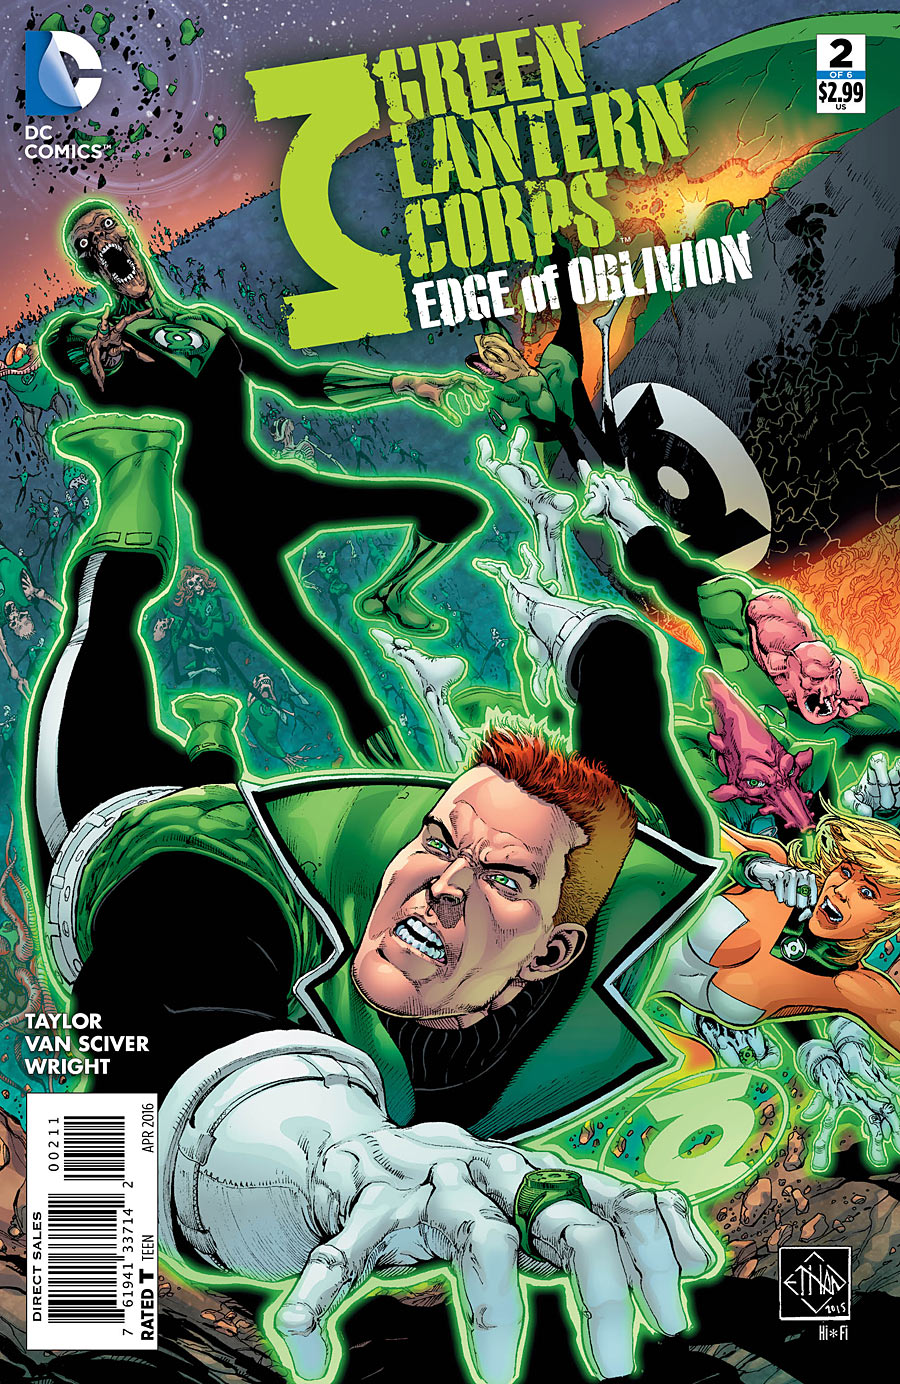 Green Lantern Corps: Edge of Oblivion Vol 1 2